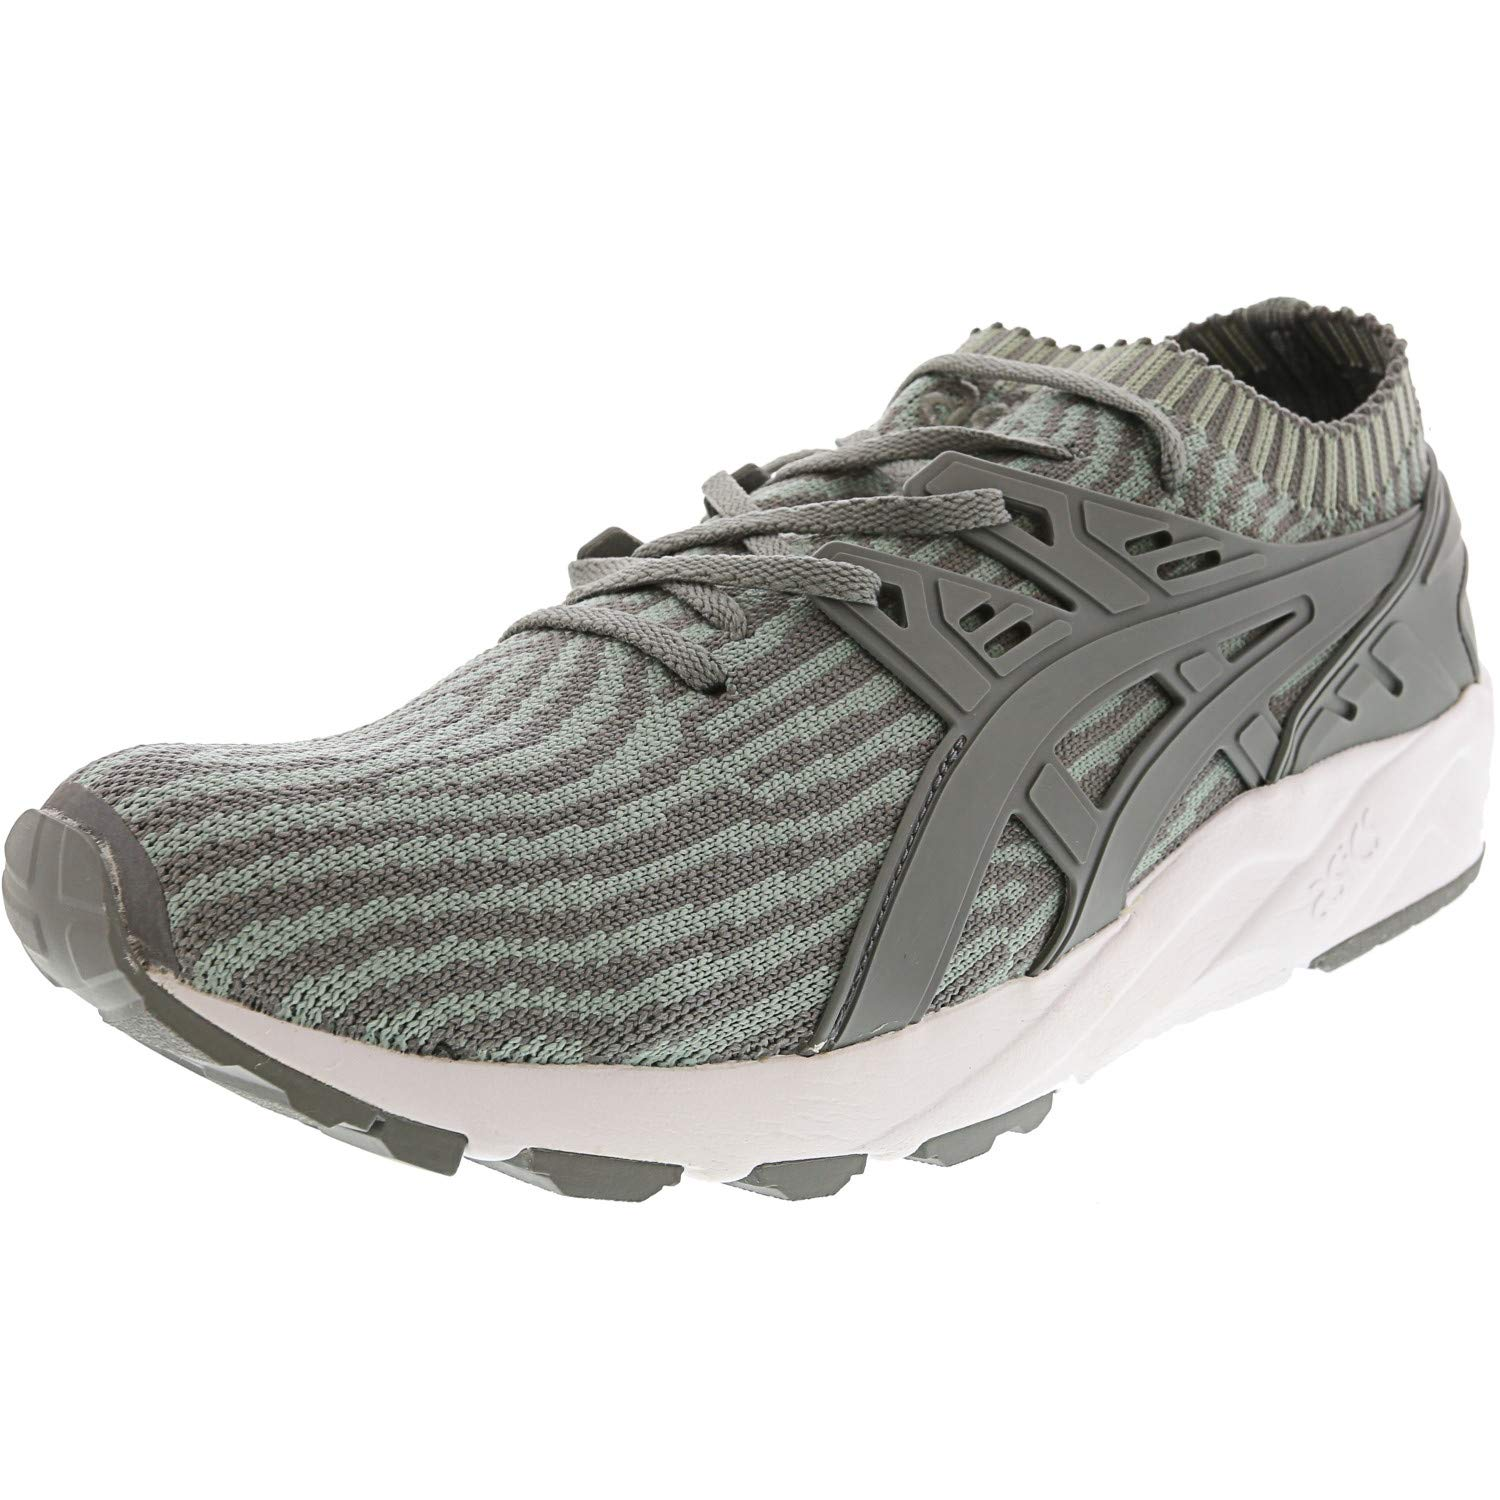 buy popular 50e0c aa594 Amazon.com | ASICS Tiger Gel-Kayano Trainer Knit Sneaker ...